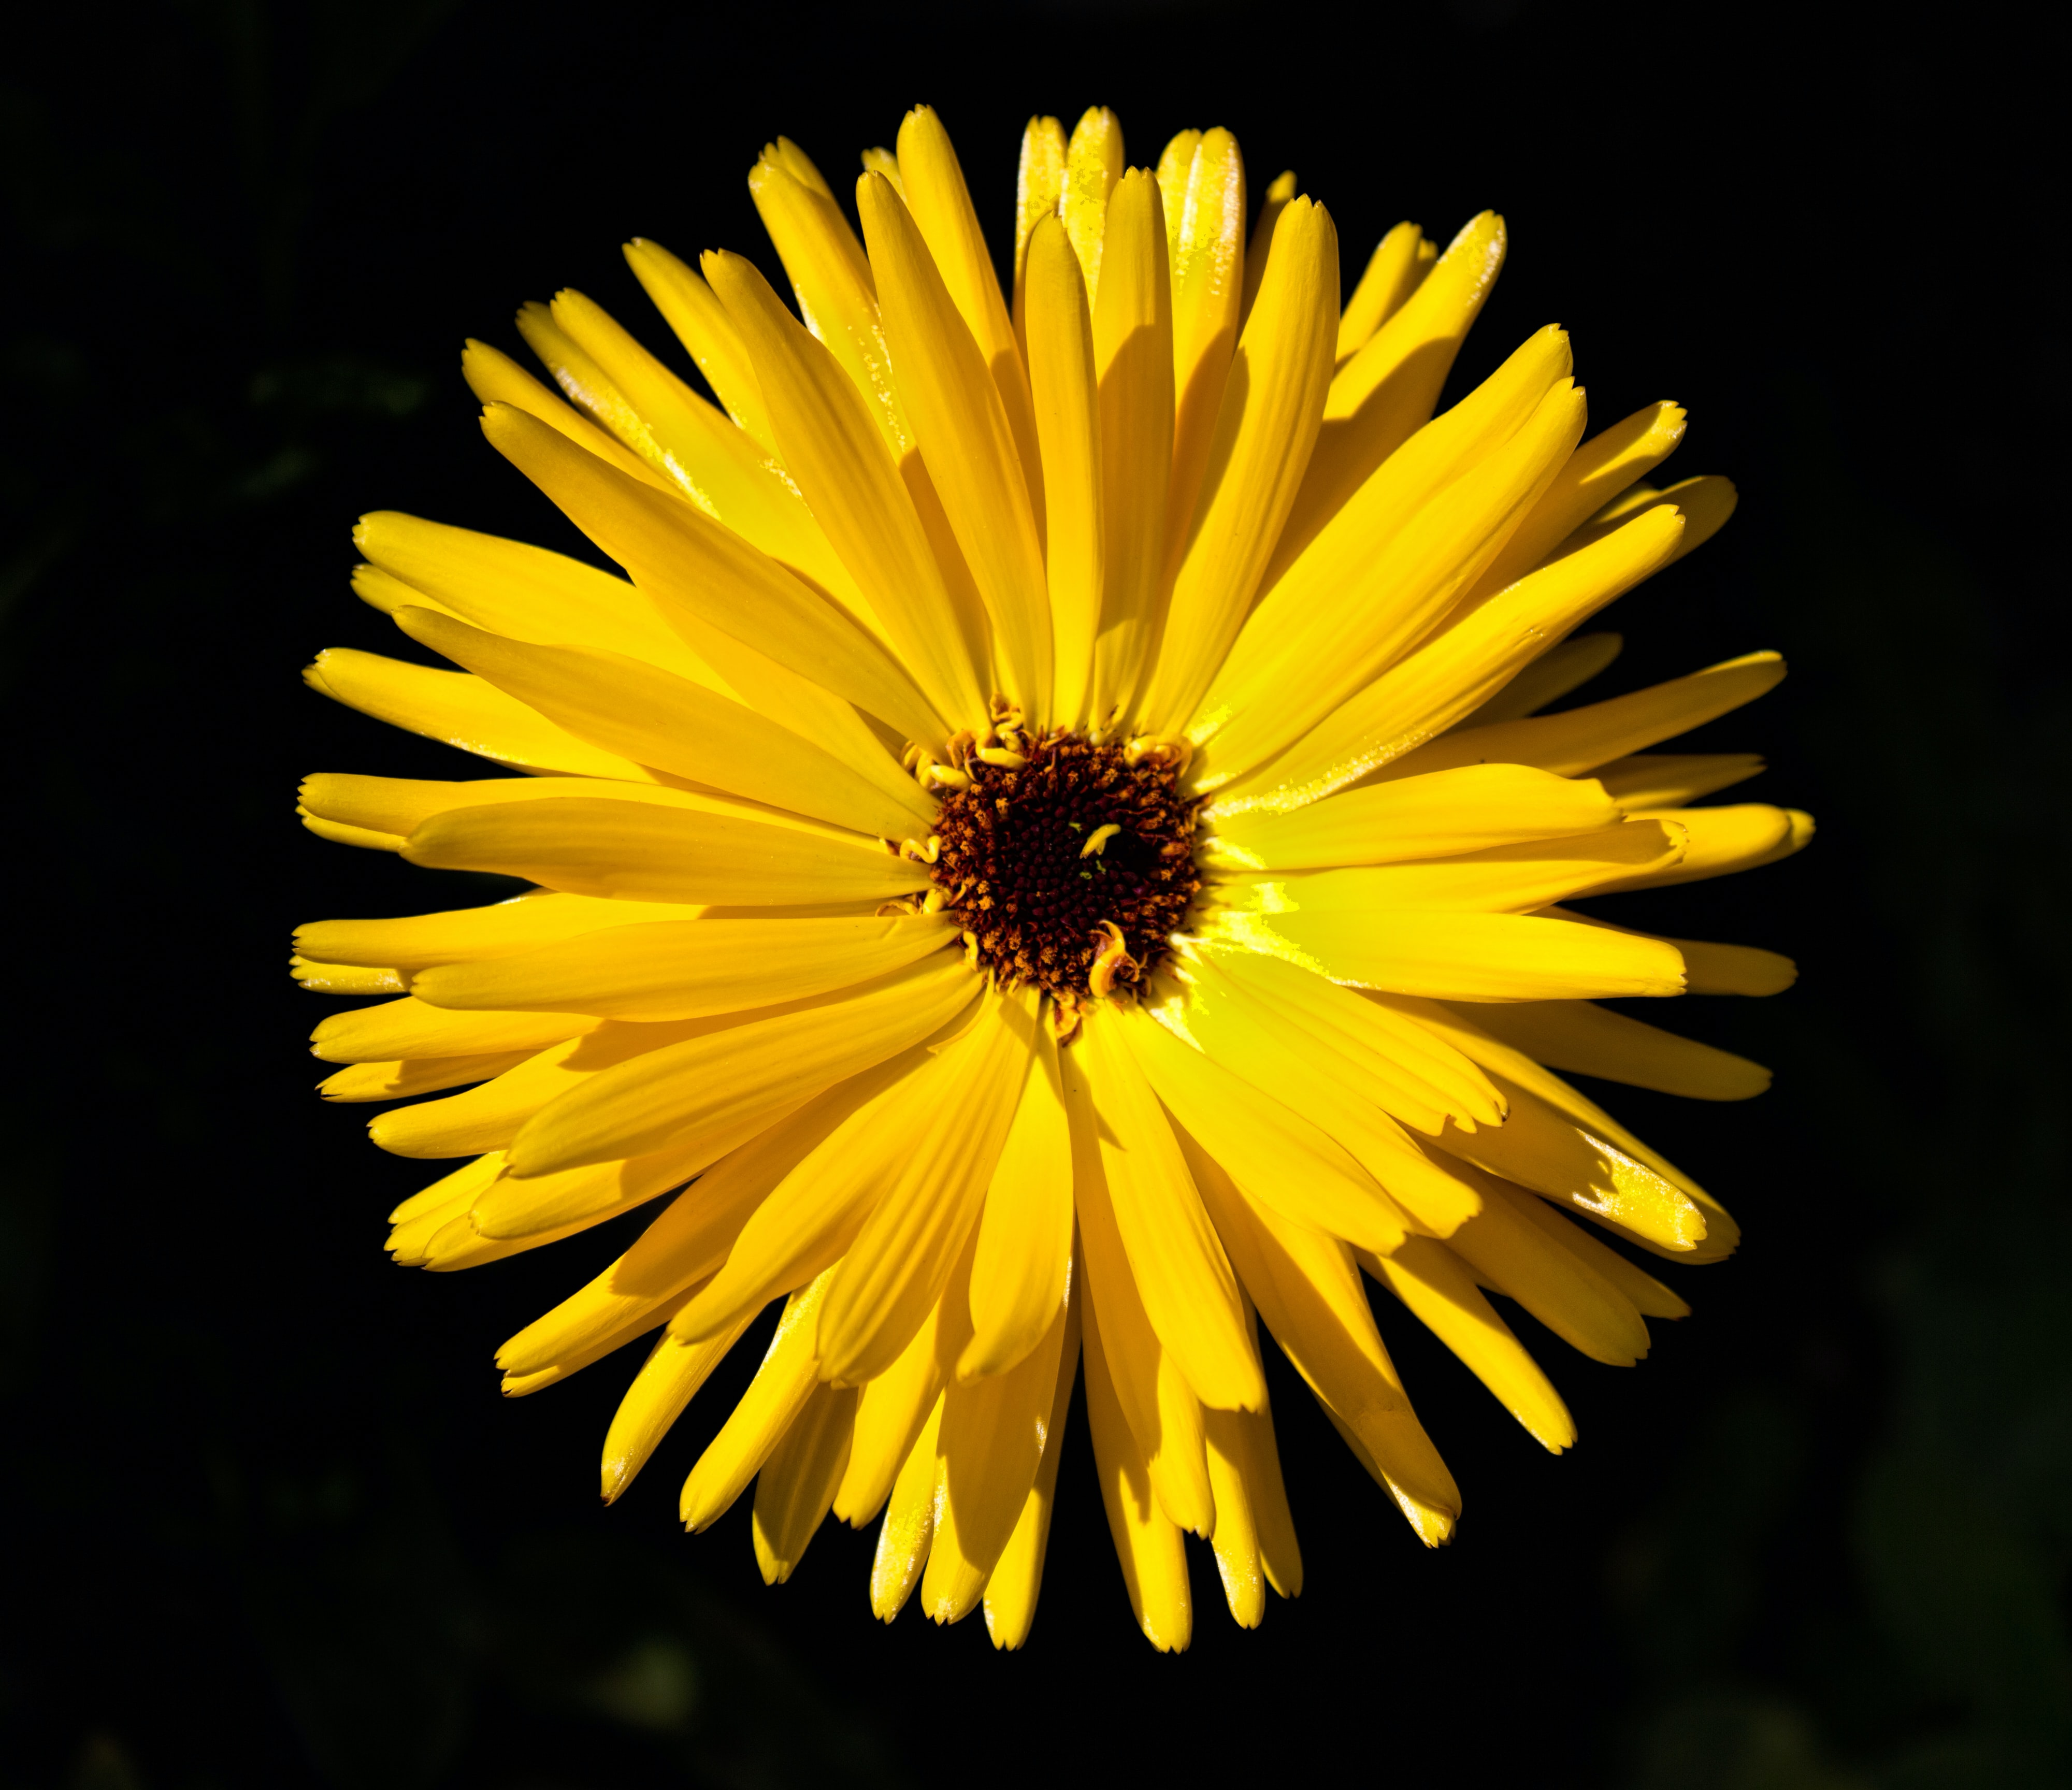 Close-up of a yellow daisy flower against a black background